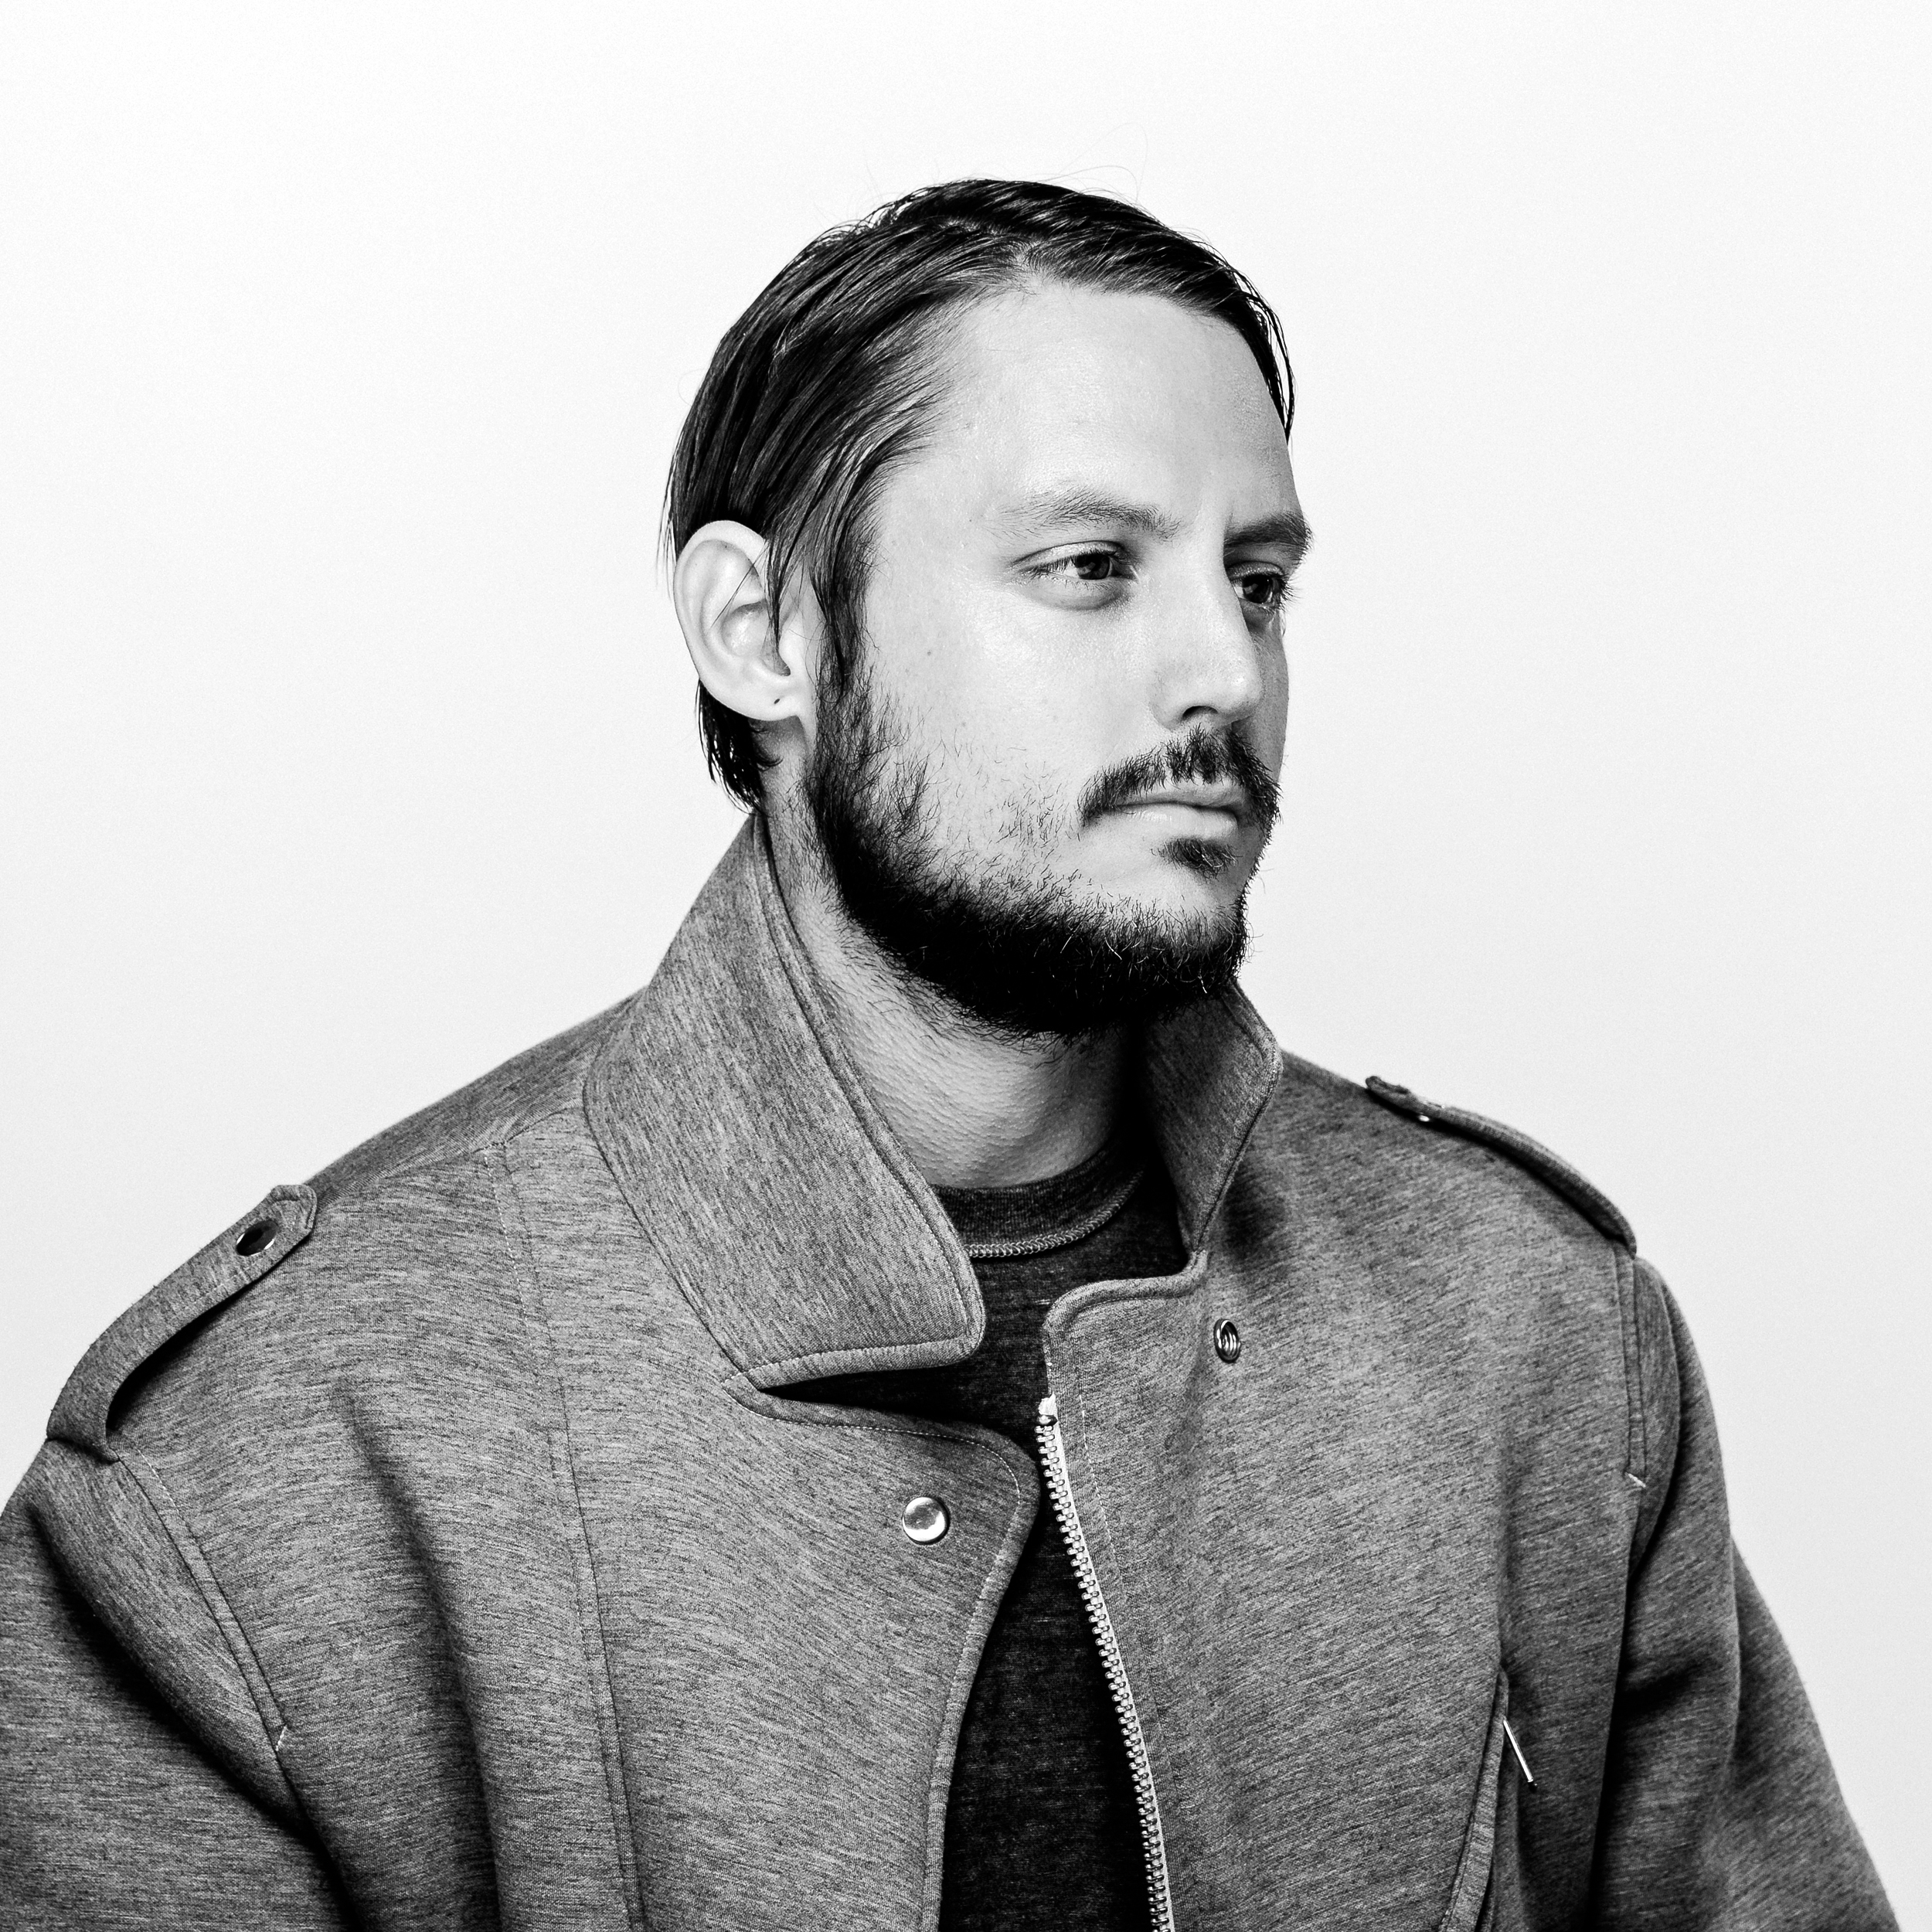 PRODUCT DEVELOPMENT + ACCOUNT MANAGEMENT - Bo Matthew Metz is an American fashion designer living and working out of Los Angeles.Within two years of living in California he worked with Rodarte, cultivating his craftsmanship and gaining invaluable experience. Metz also maintained a necessary artistic outlet on the side through styling and working on music videos, creative direction, sculpture and set design.He designed his first clothing line, Bright Future, which included two seasons and sold in high-contemporary stores placed alongside brands such as Vivienne Westwood, Acne Studios, Alexander Wang, and Rick Owens.Metz held the role of Creative Director for Age of Man, a men's contemporary street wear brand, and the women's counterpart line, ROHM, which sold at Saks Fifth Avenue, Intermix, and Macy's.In the Spring of 2014, a long-time friend stepped into a forgotten original BOMME gown. It was in that moment Metz decided to pursue working independently and designing freelywww.bommestudio.com